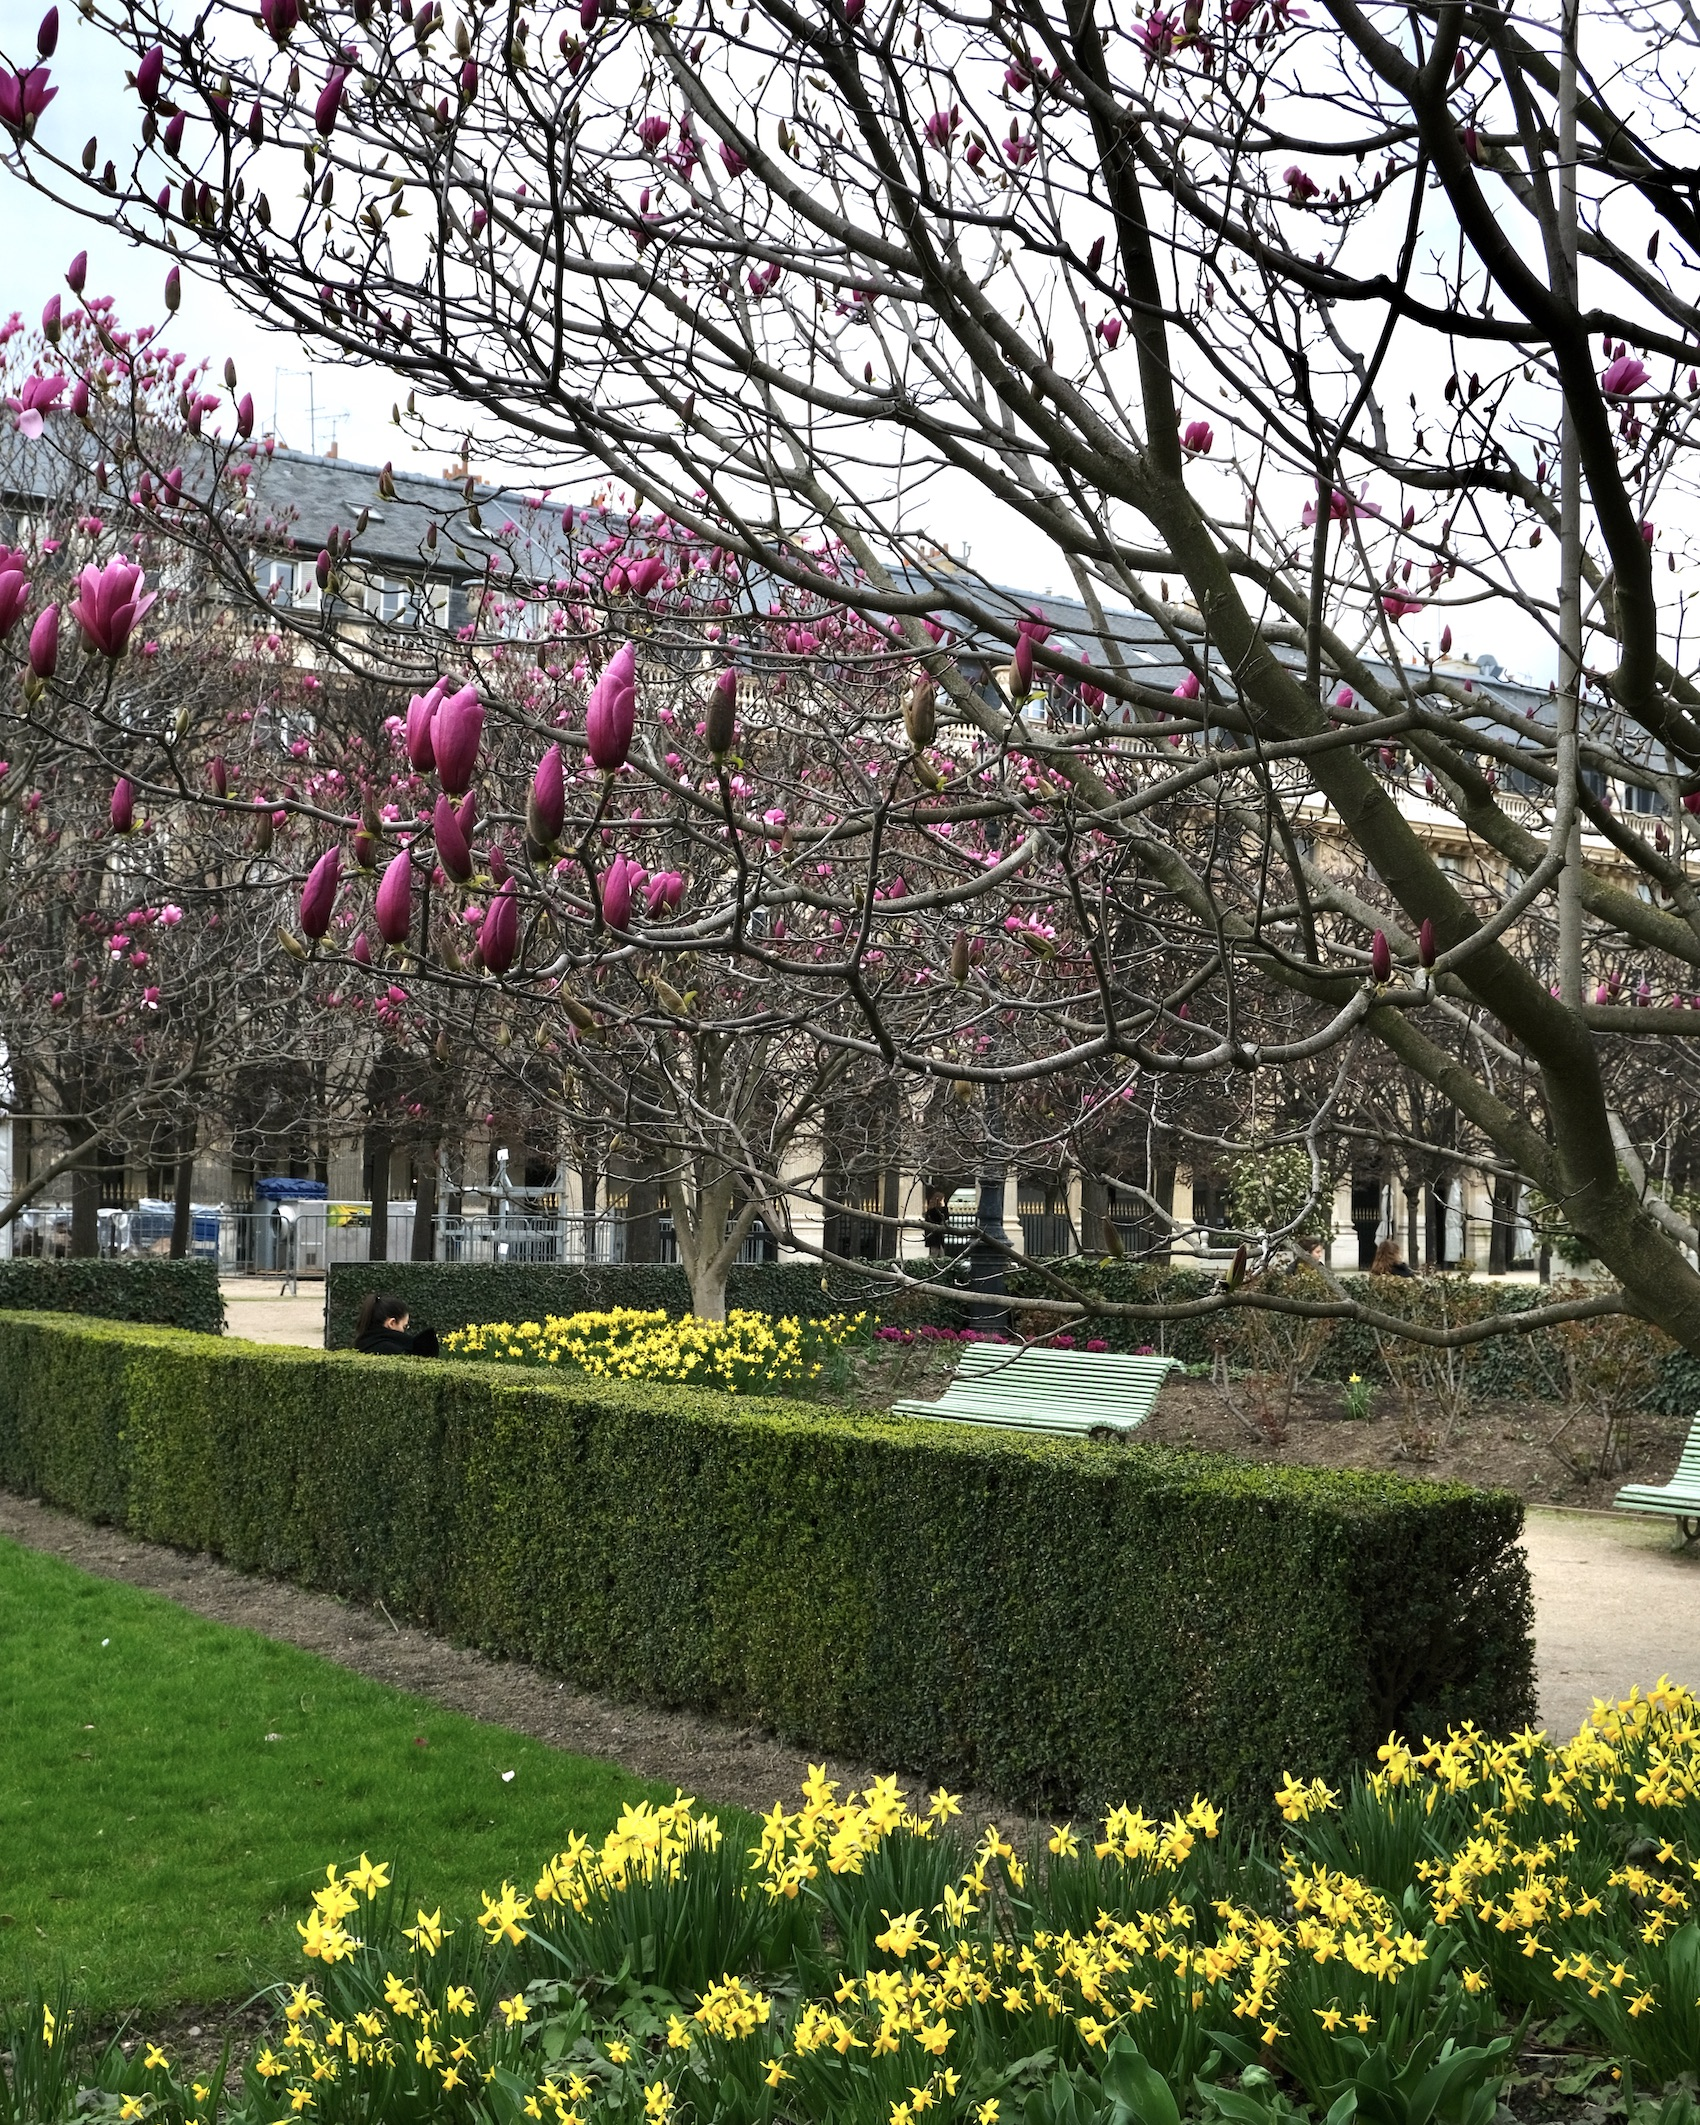 Early Spring Flowers in Paris at the Palais Royal